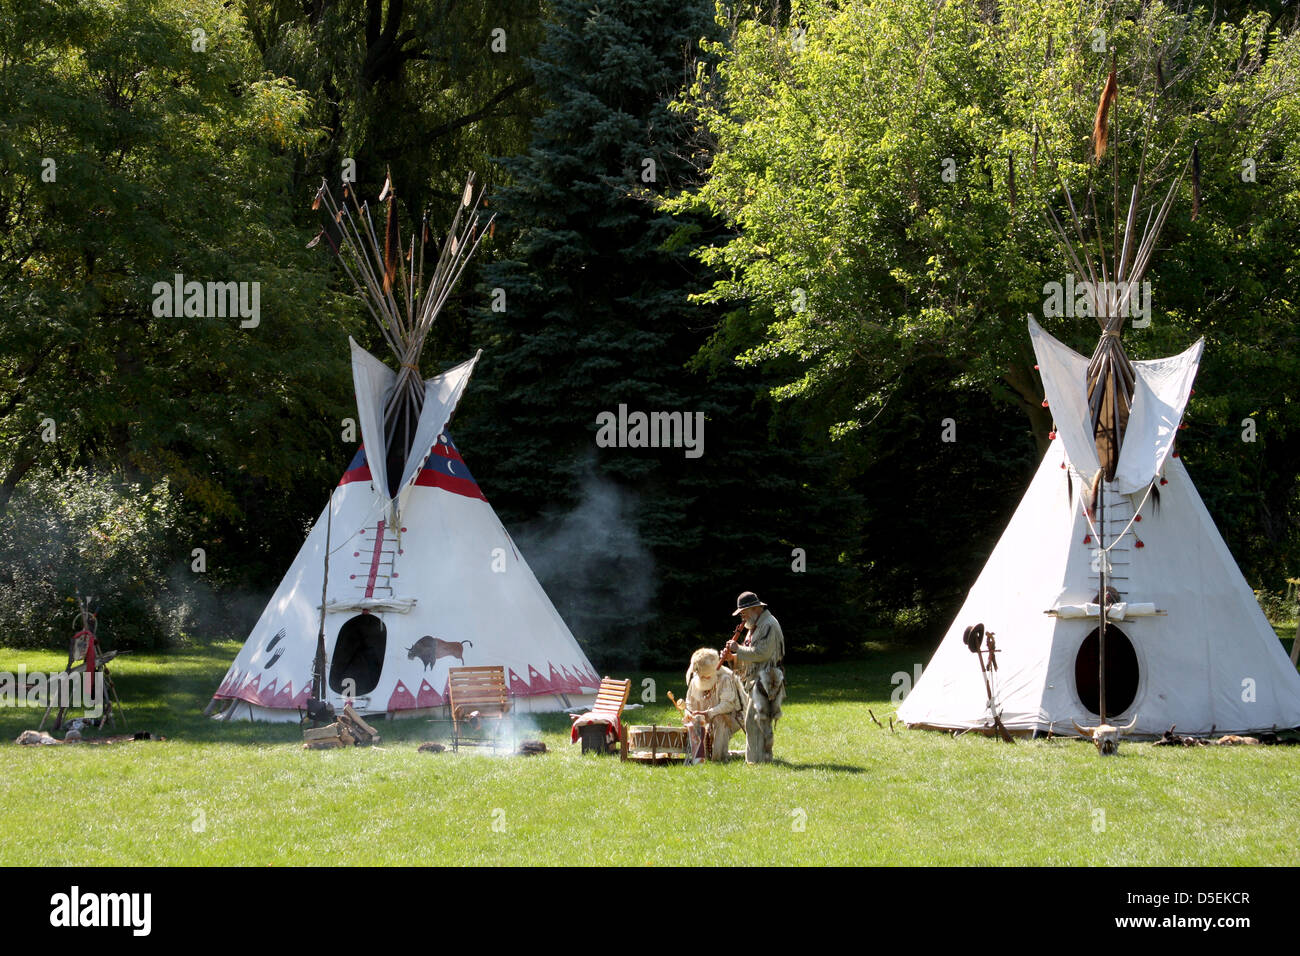 A Native American Indian Tipi Campsite With Men Playing